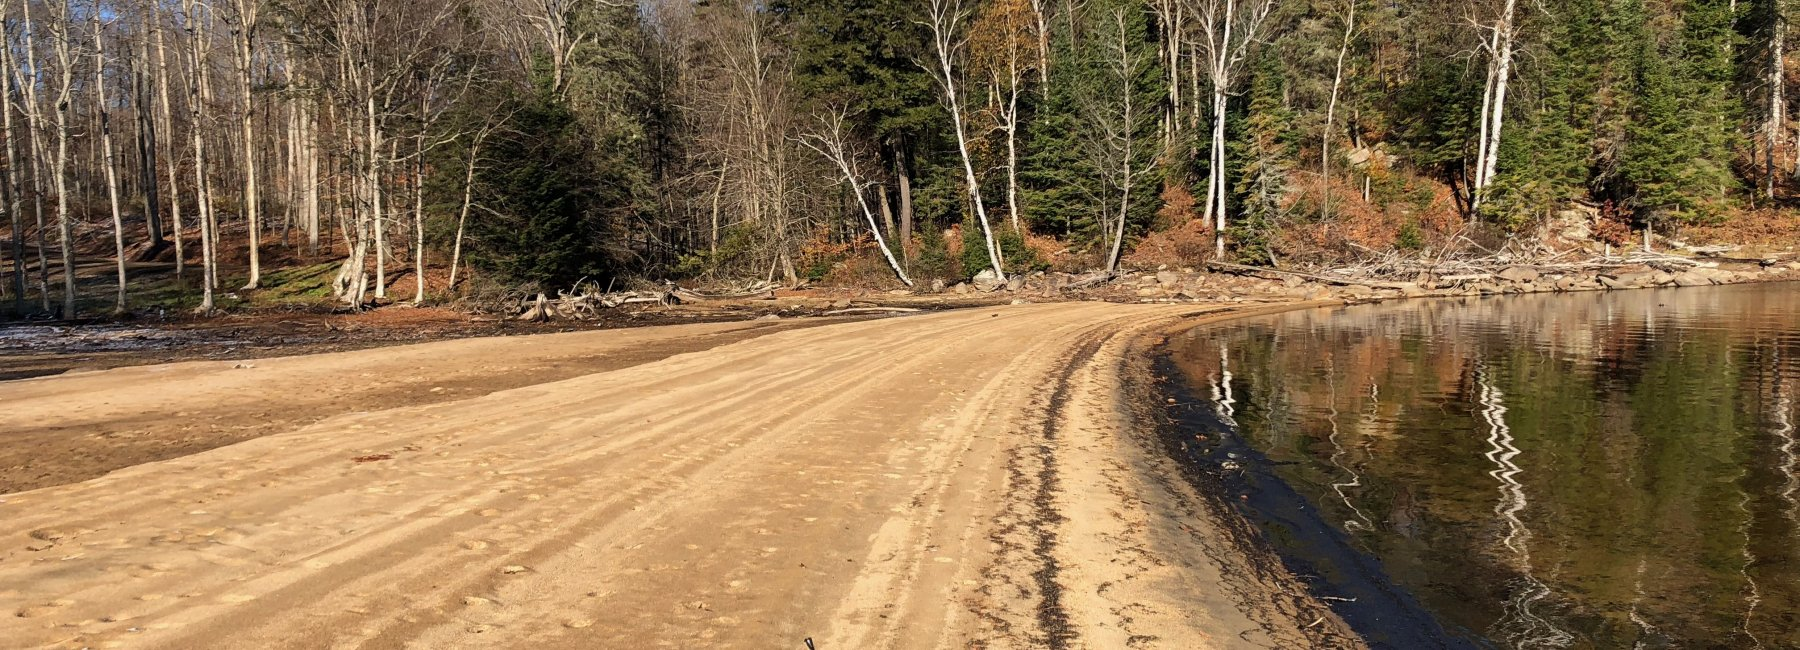 Lot 37, Alpine Ridge, Percy Lake, Haliburton